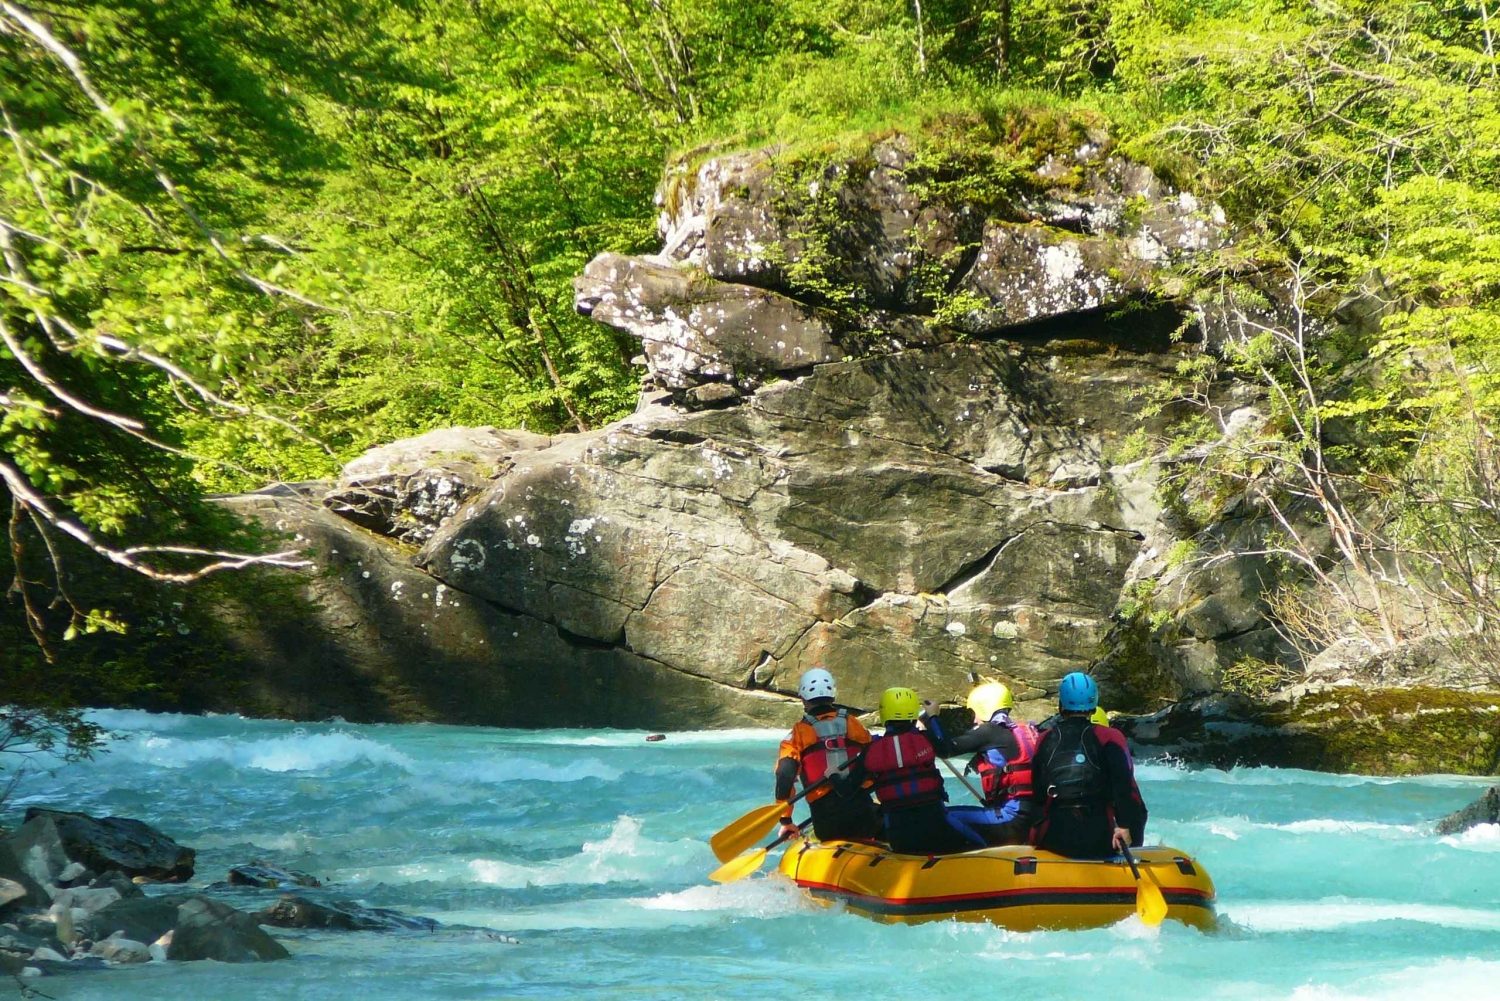 Half-Day Rafting Tour on Soča River